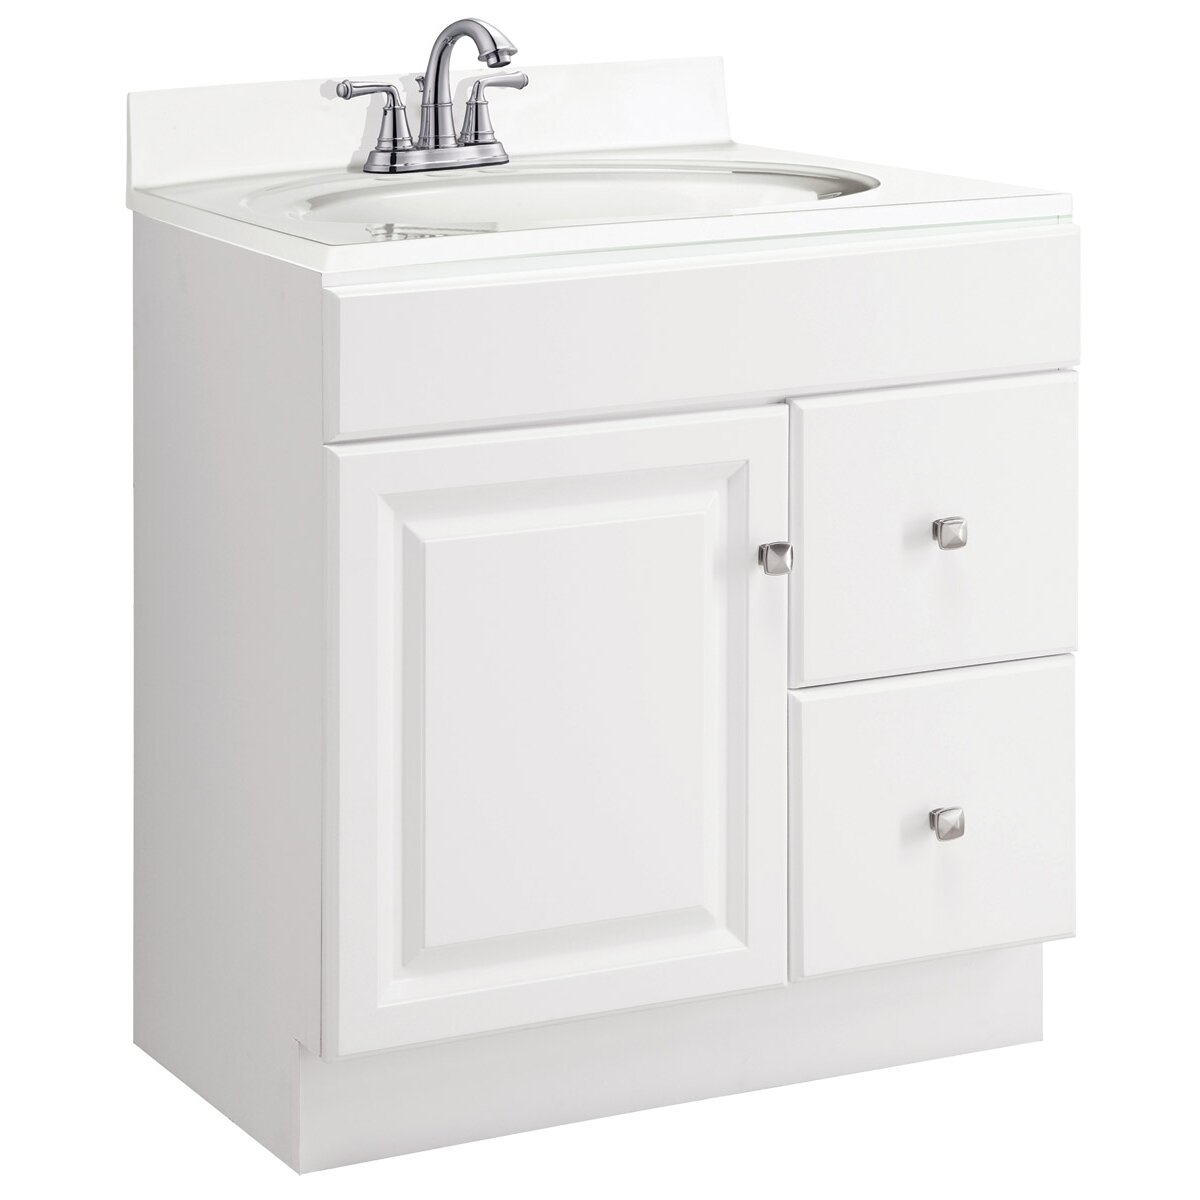 "Design House Wyndham 30"" Single Bathroom Vanity Base"